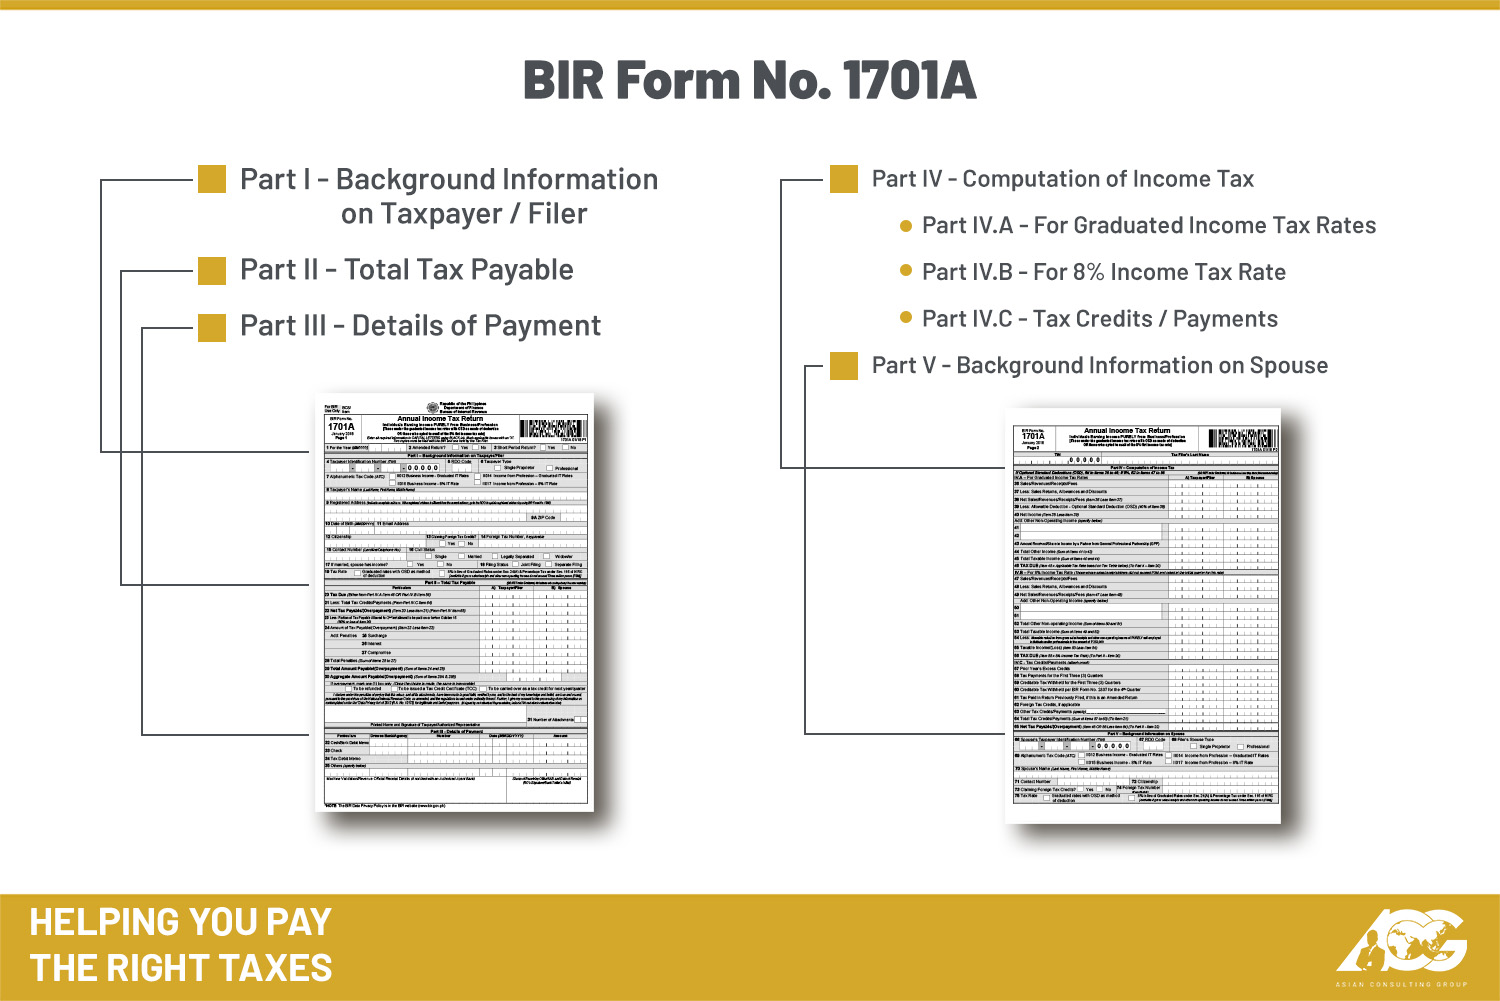 AskTheTaxWhiz: Filing ITRs for individuals